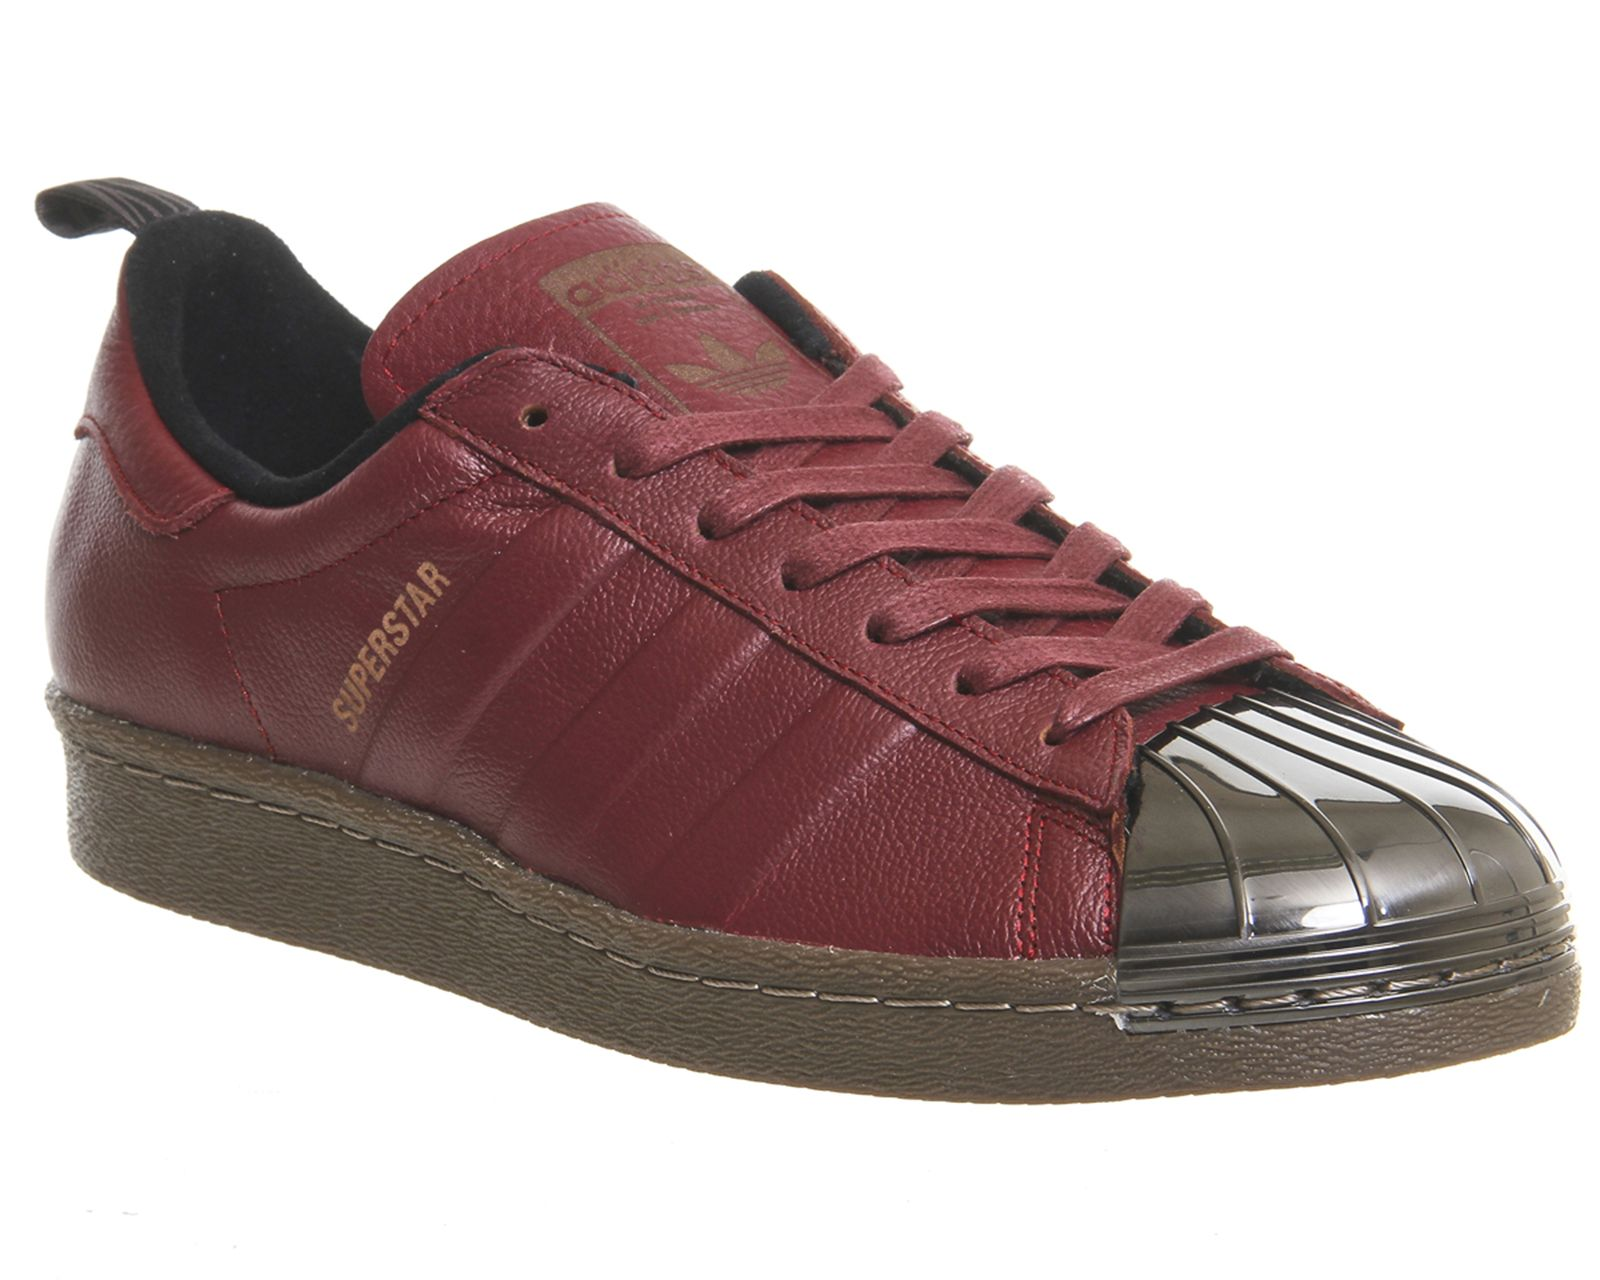 san francisco 69016 650f8 Adidas, Superstar 80s, Cherry Red Offspring 20